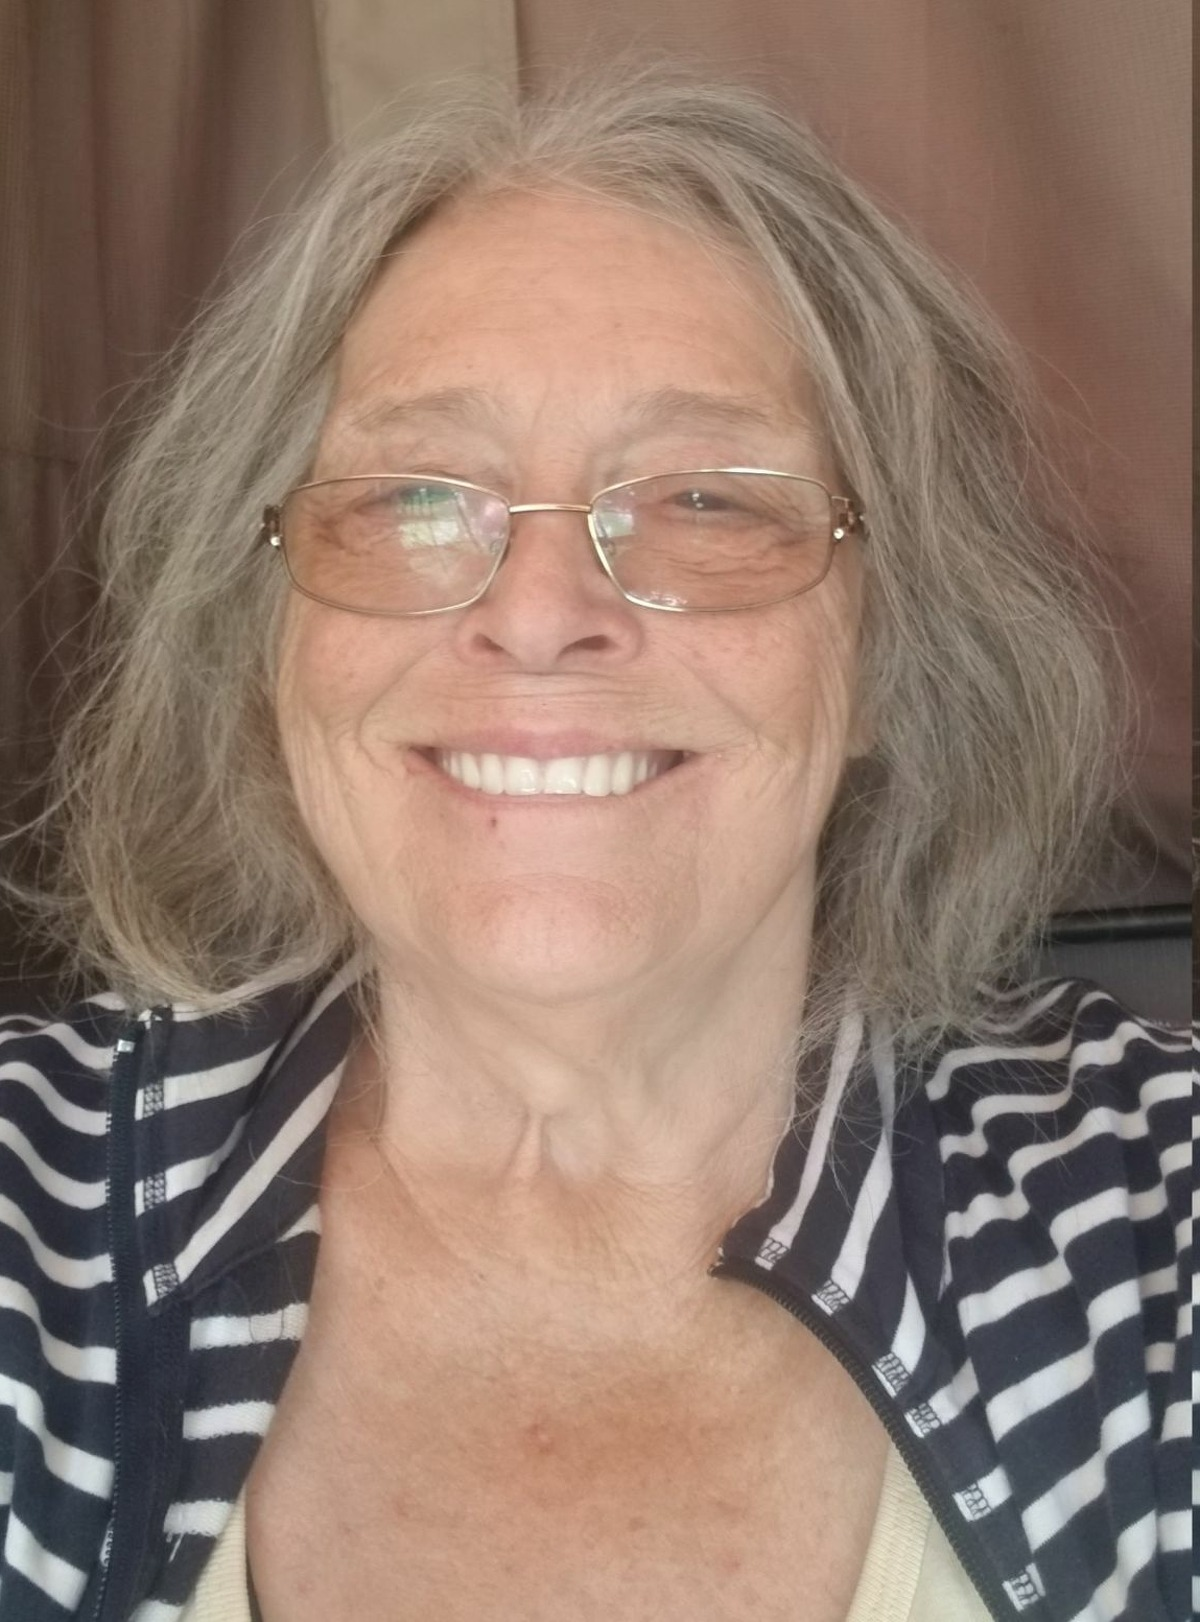 Cheryl Billings, 64, is part of a growing number of poor, unemployed or unsuspecting patients being sued for uncollected medical debt in a trend that some see as predatory.